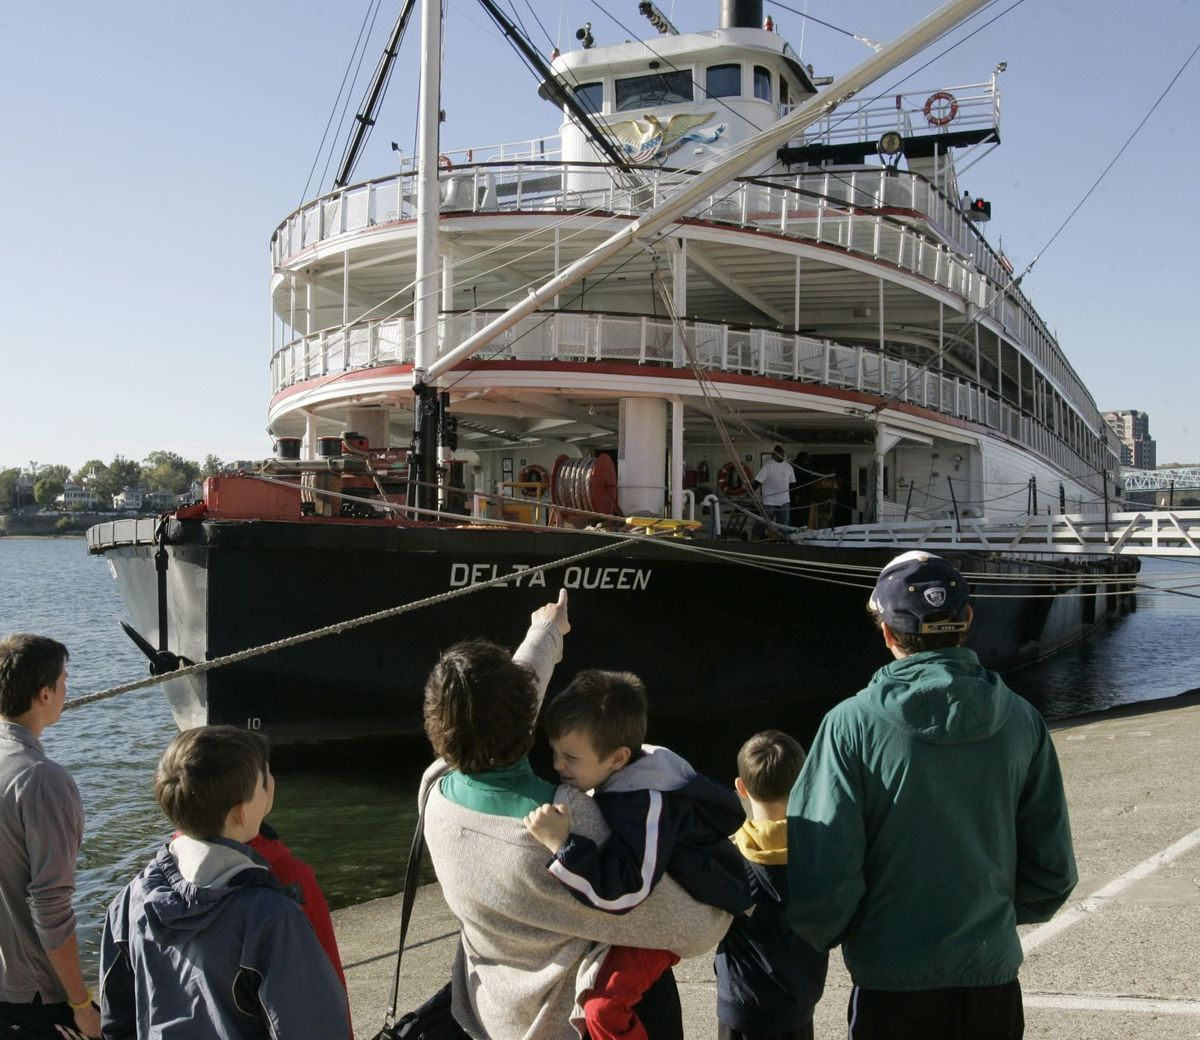 Historic Delta Queen riverboat gets Senate approval to